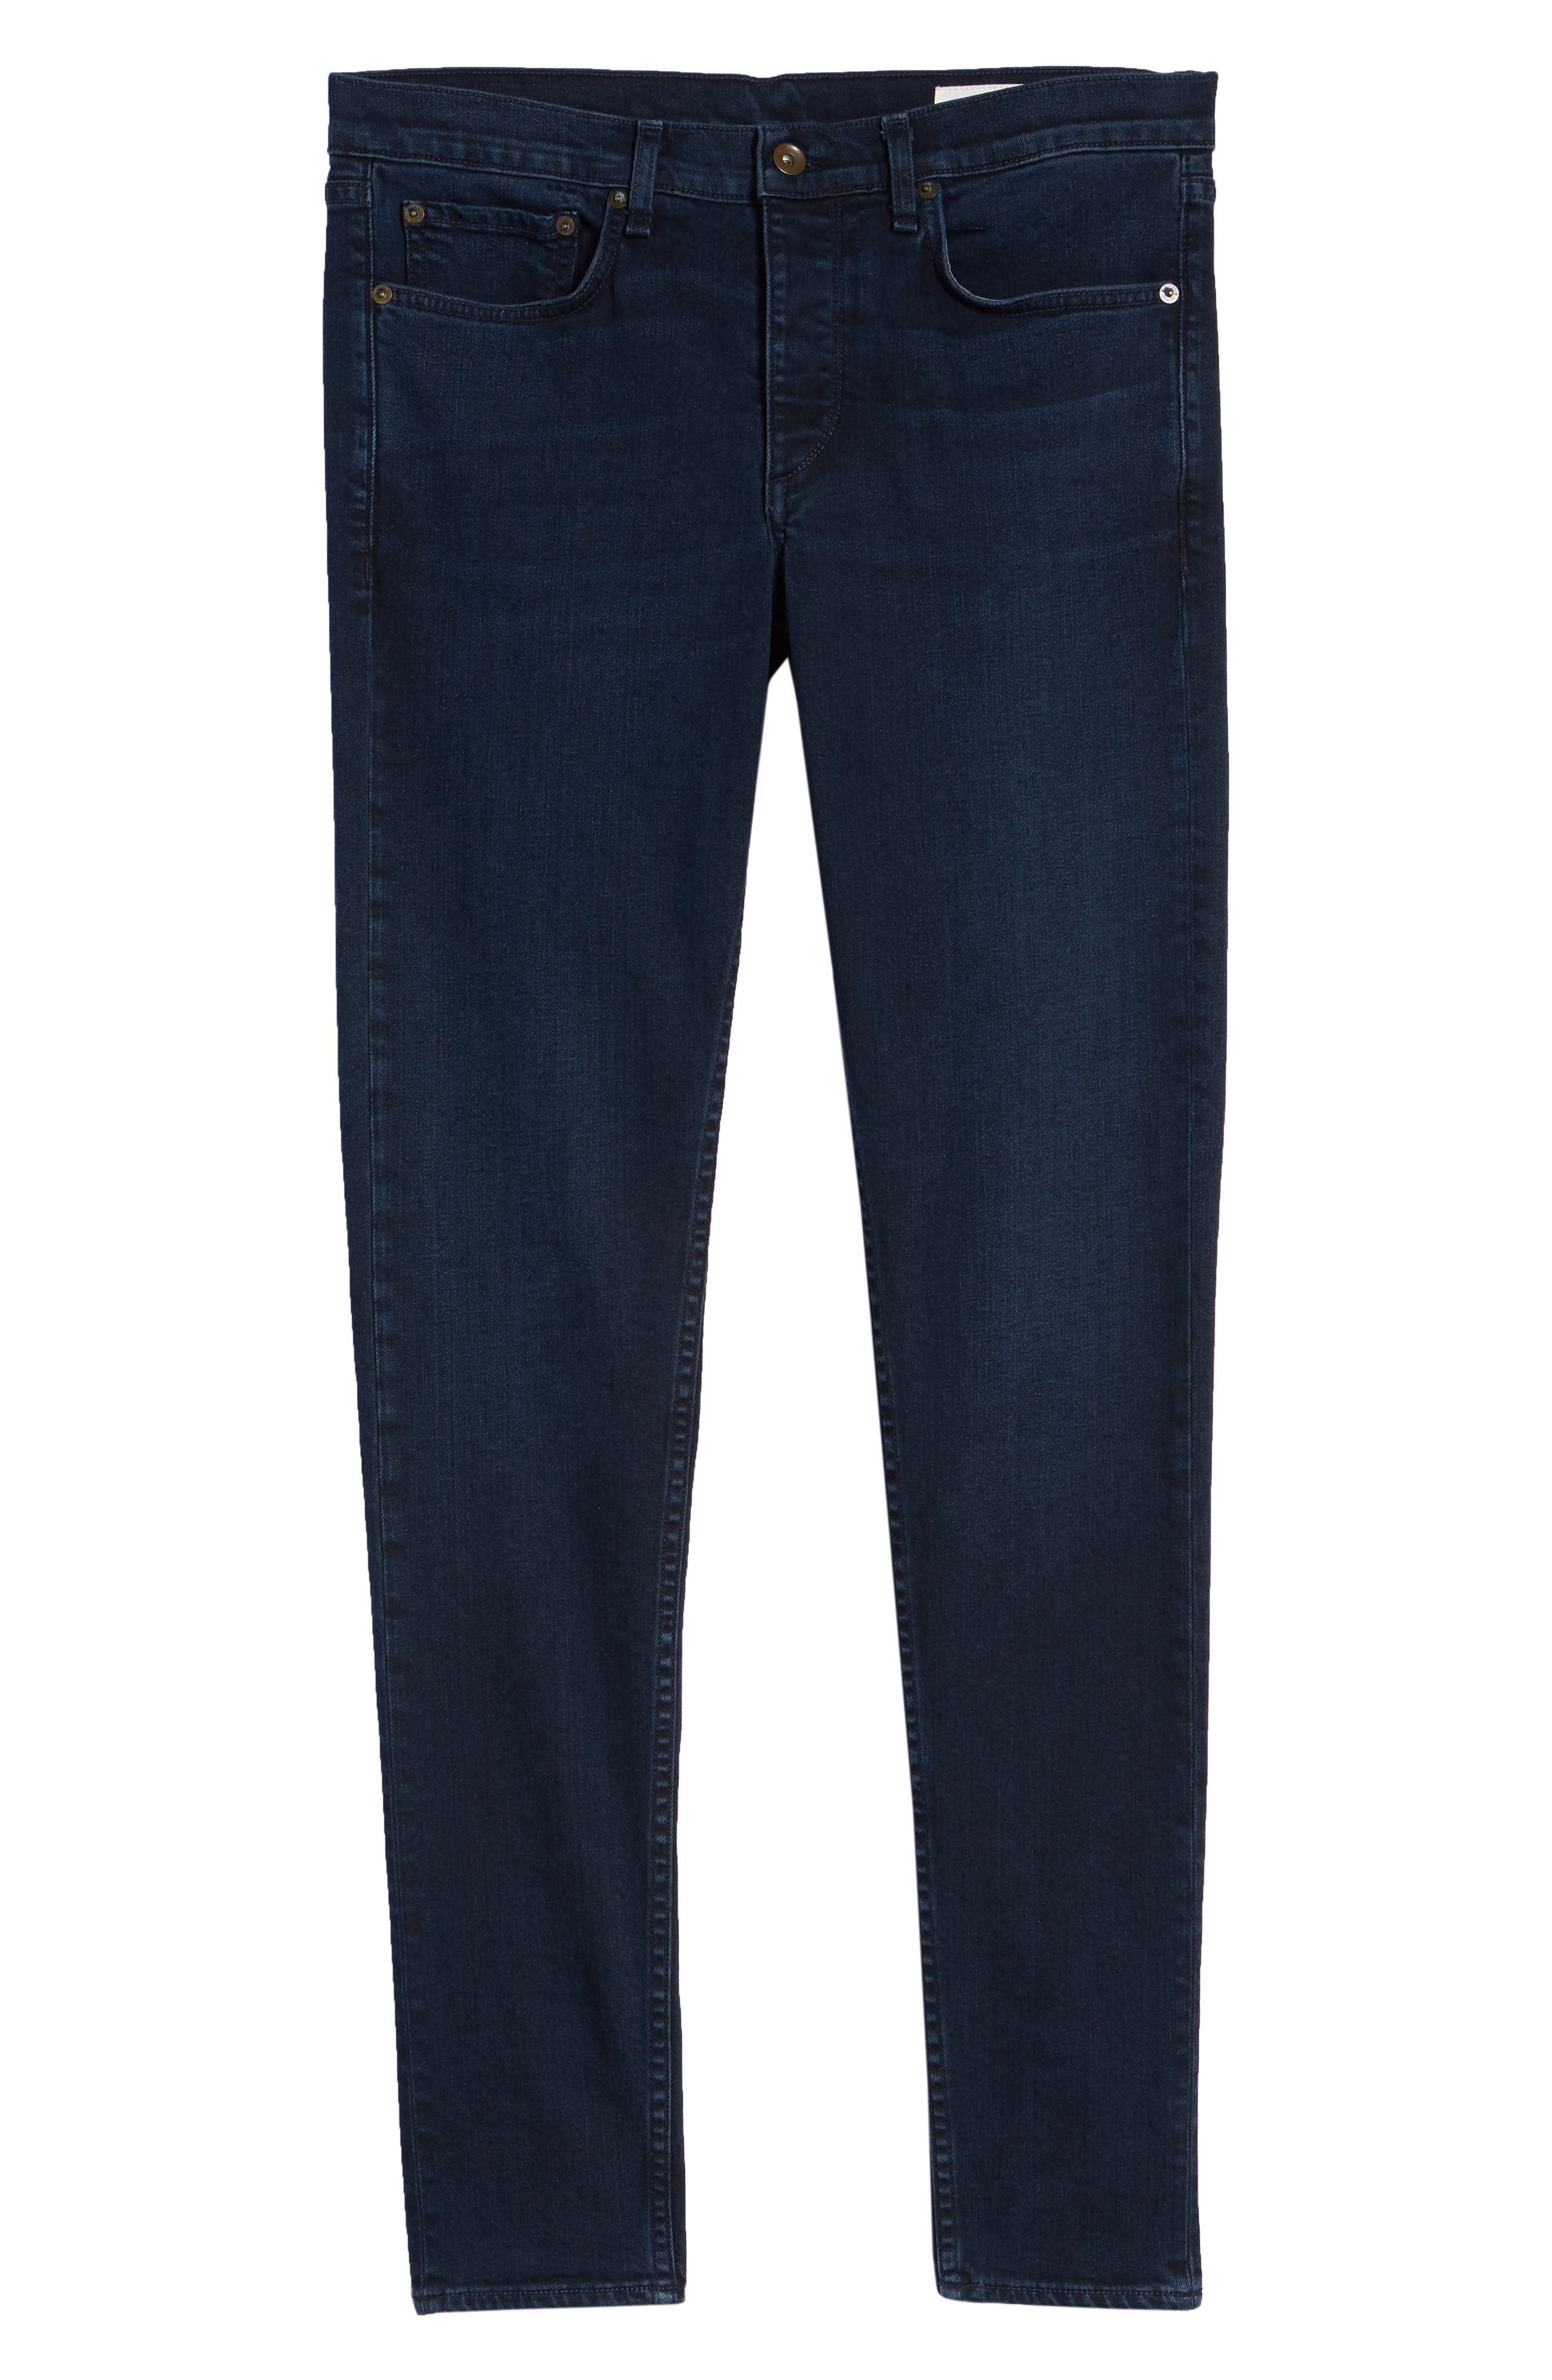 Fit 1 Skinny Fit Jeans,                             Alternate thumbnail 6, color,                             420